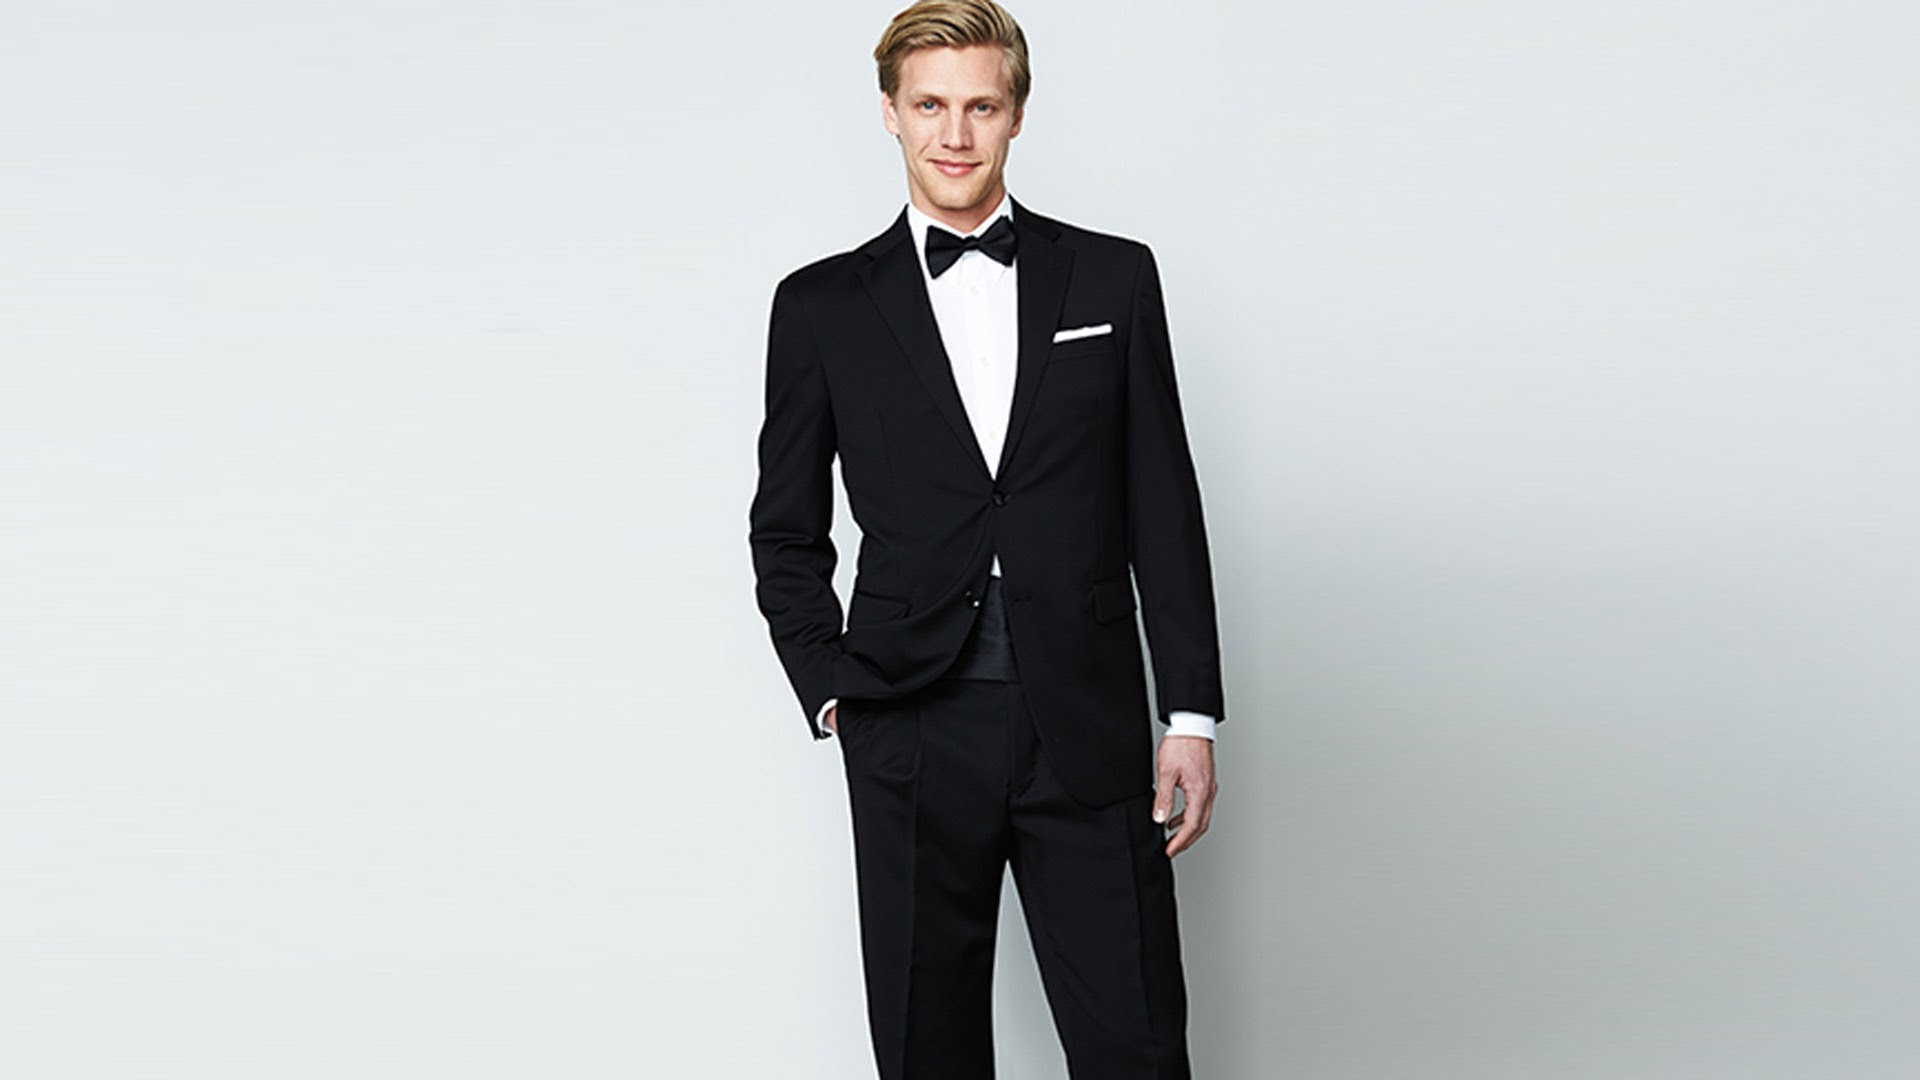 white wedding suit for men photo - 1